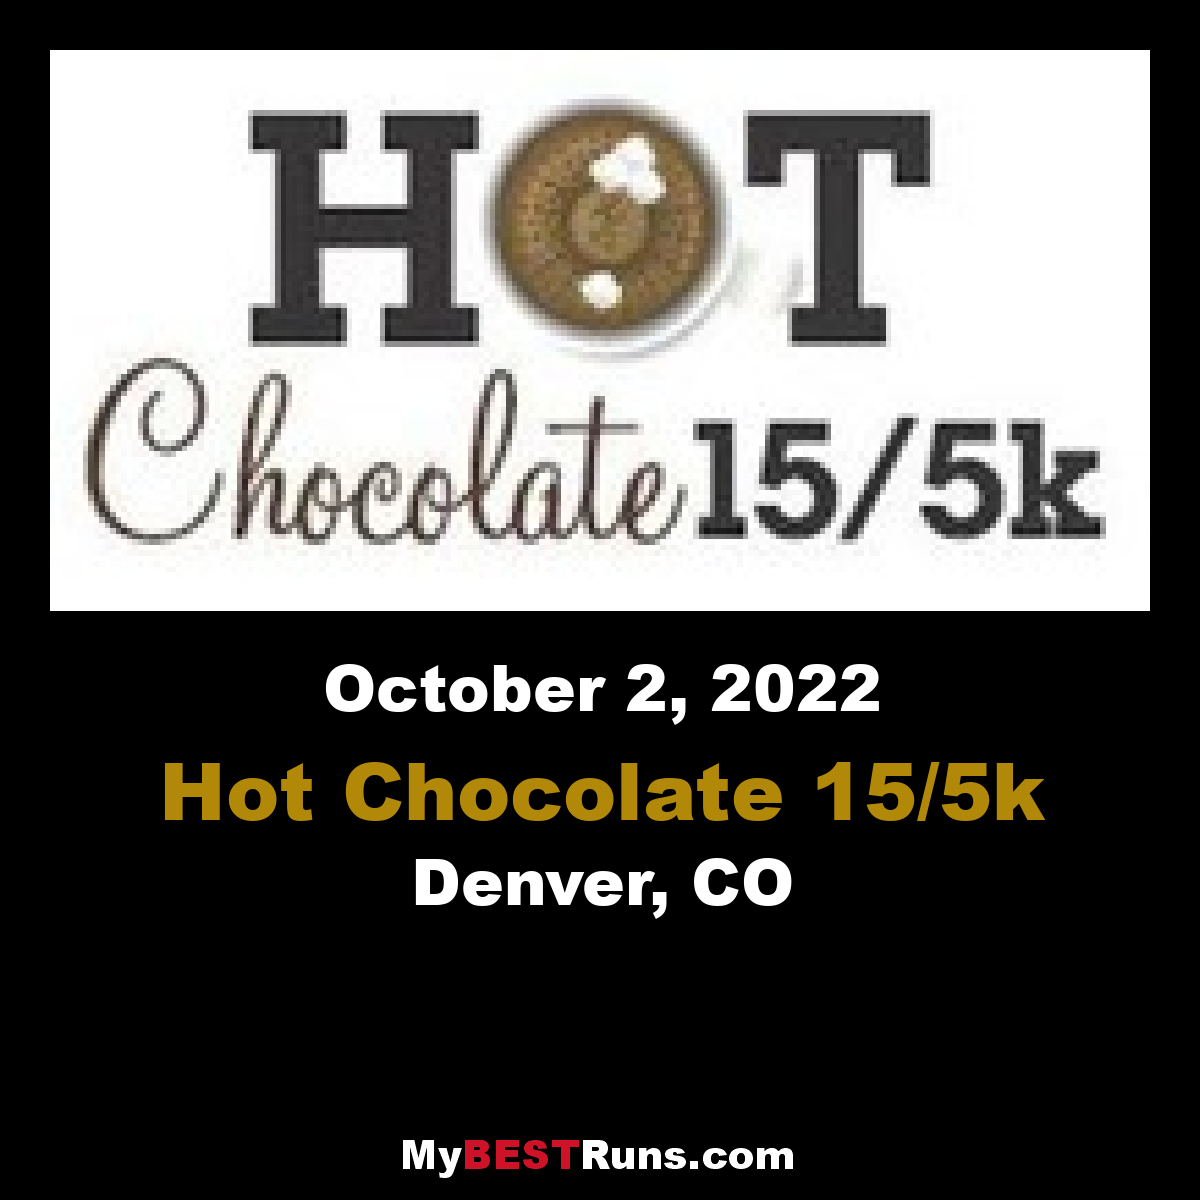 Hot Chocolate Denver - Denver, CO - 10/1/2017 - My BEST Runs ...